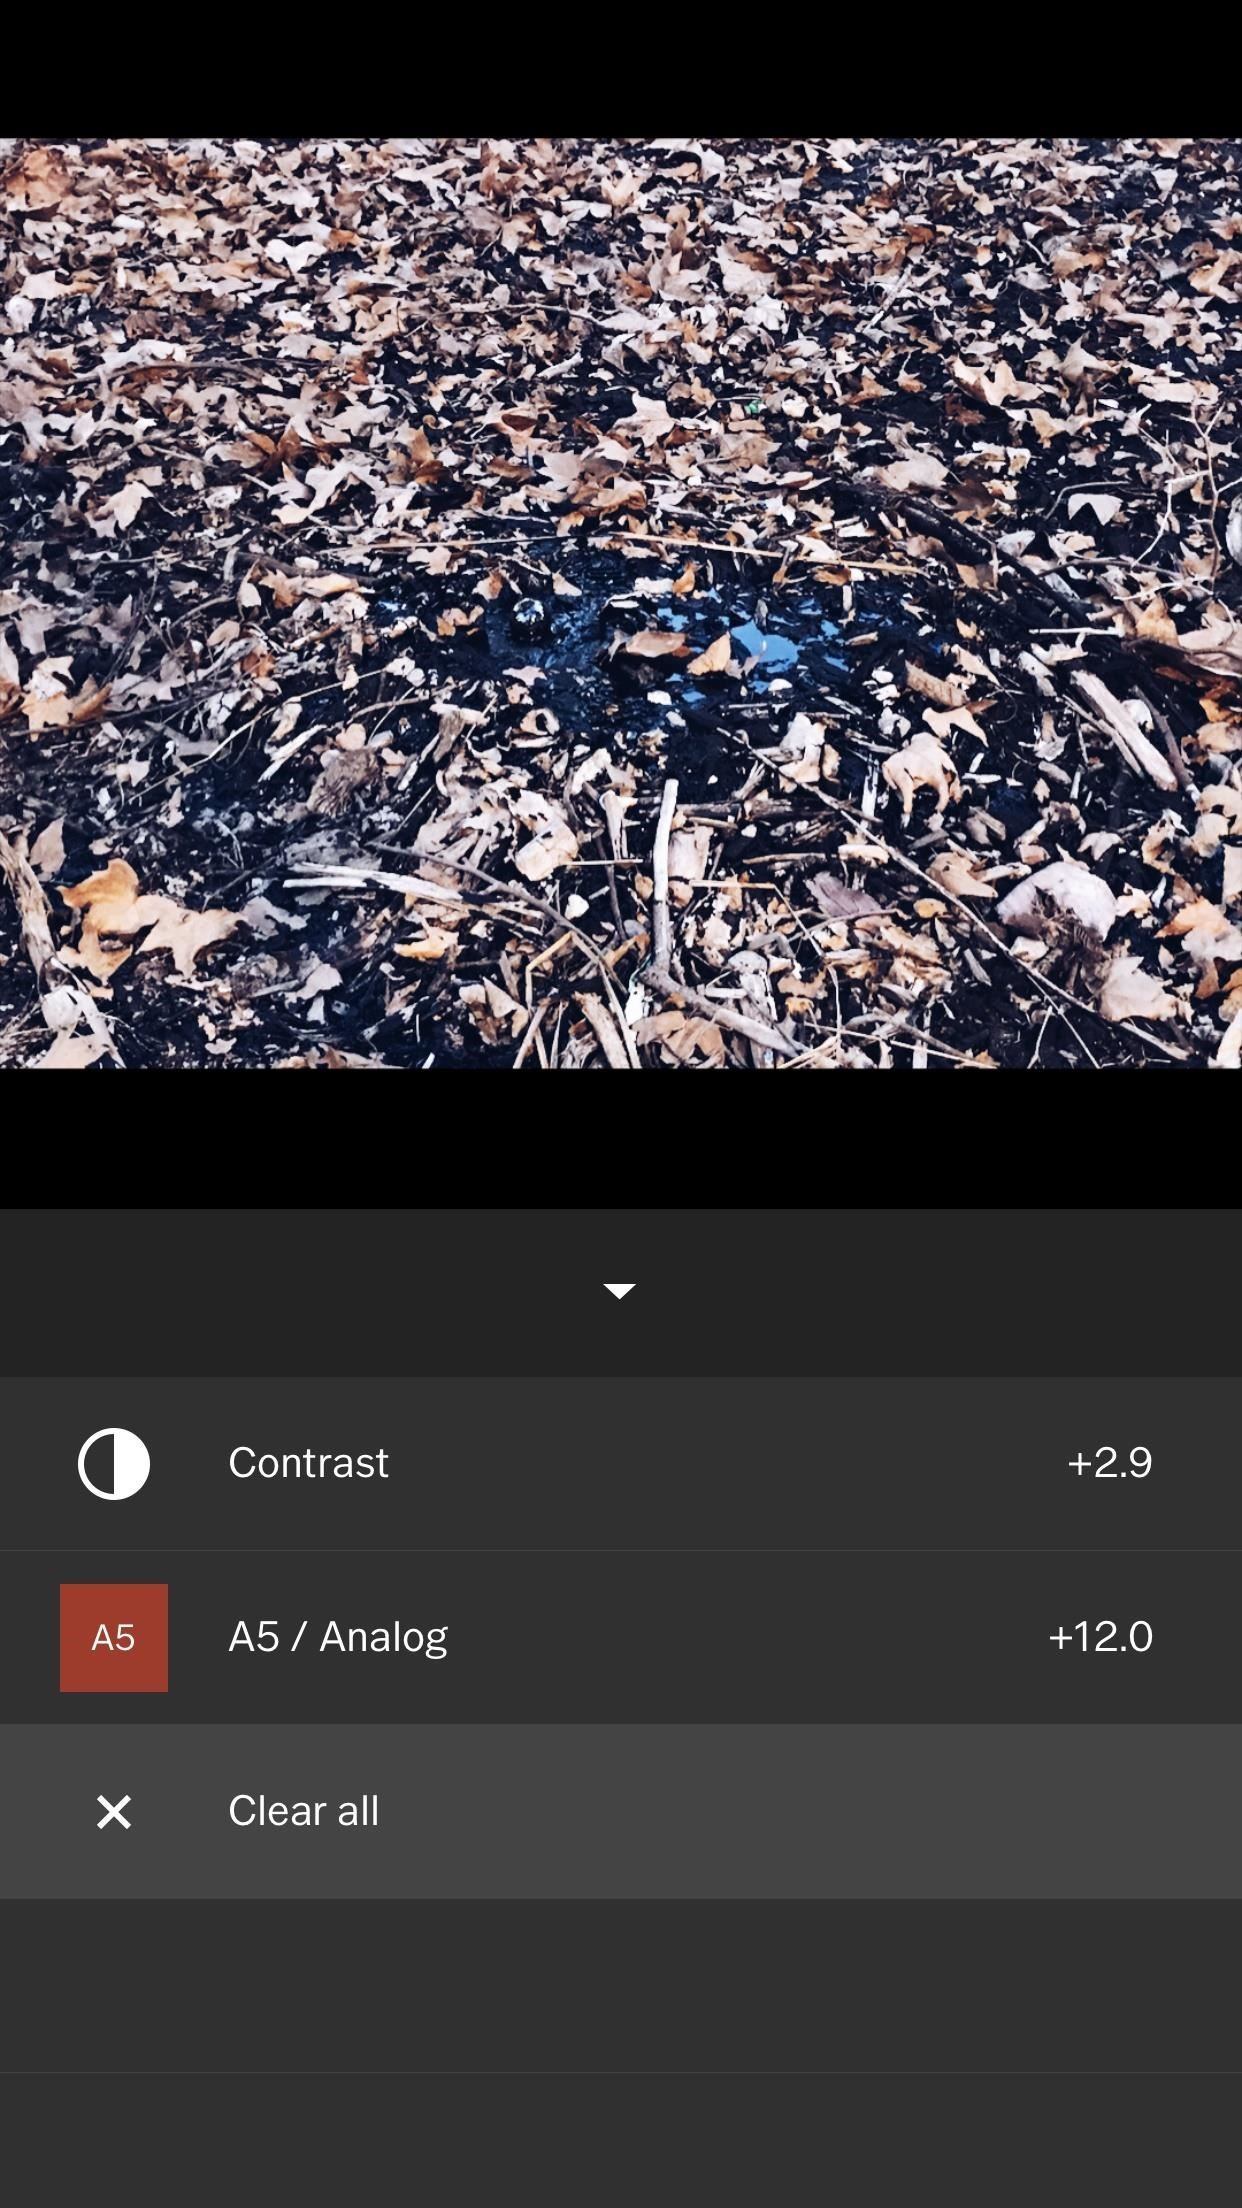 VSCO 101: How to Use Presets (or Filters) on Your Photos